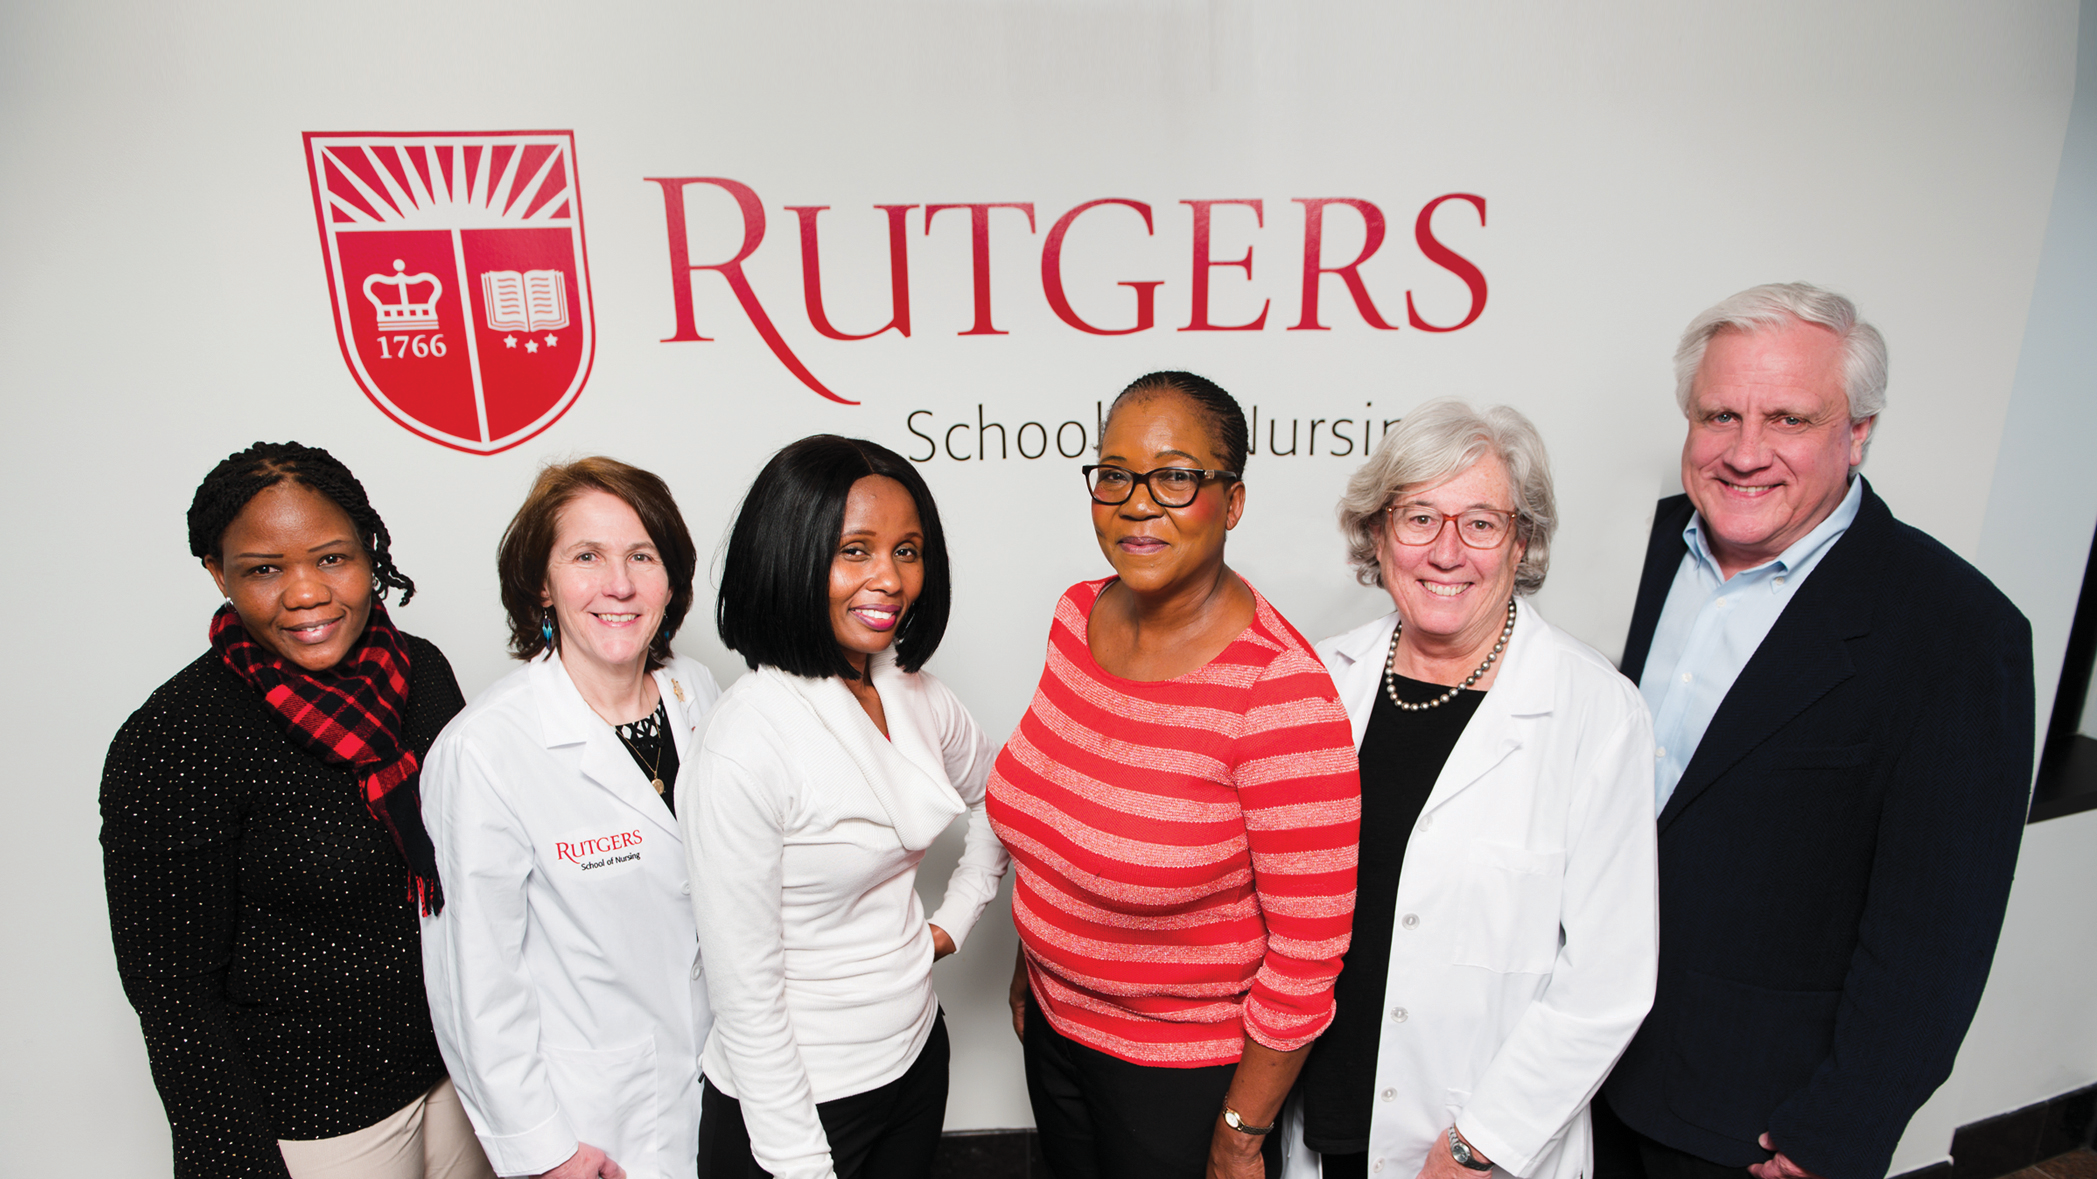 At Rutgers School of Nursing are Goitseone Maifale-Mburu, a principal registered nurse from Gaborone; Debora Tracey, assistant professor and director, Center for Clinical Learning; Joyce Vuyiswa Khutjwe and Mosidi Tseleng Mokotedi, lecturers at University of Botswana; and Suzanne Willard, clinical professor and associate dean for global health.